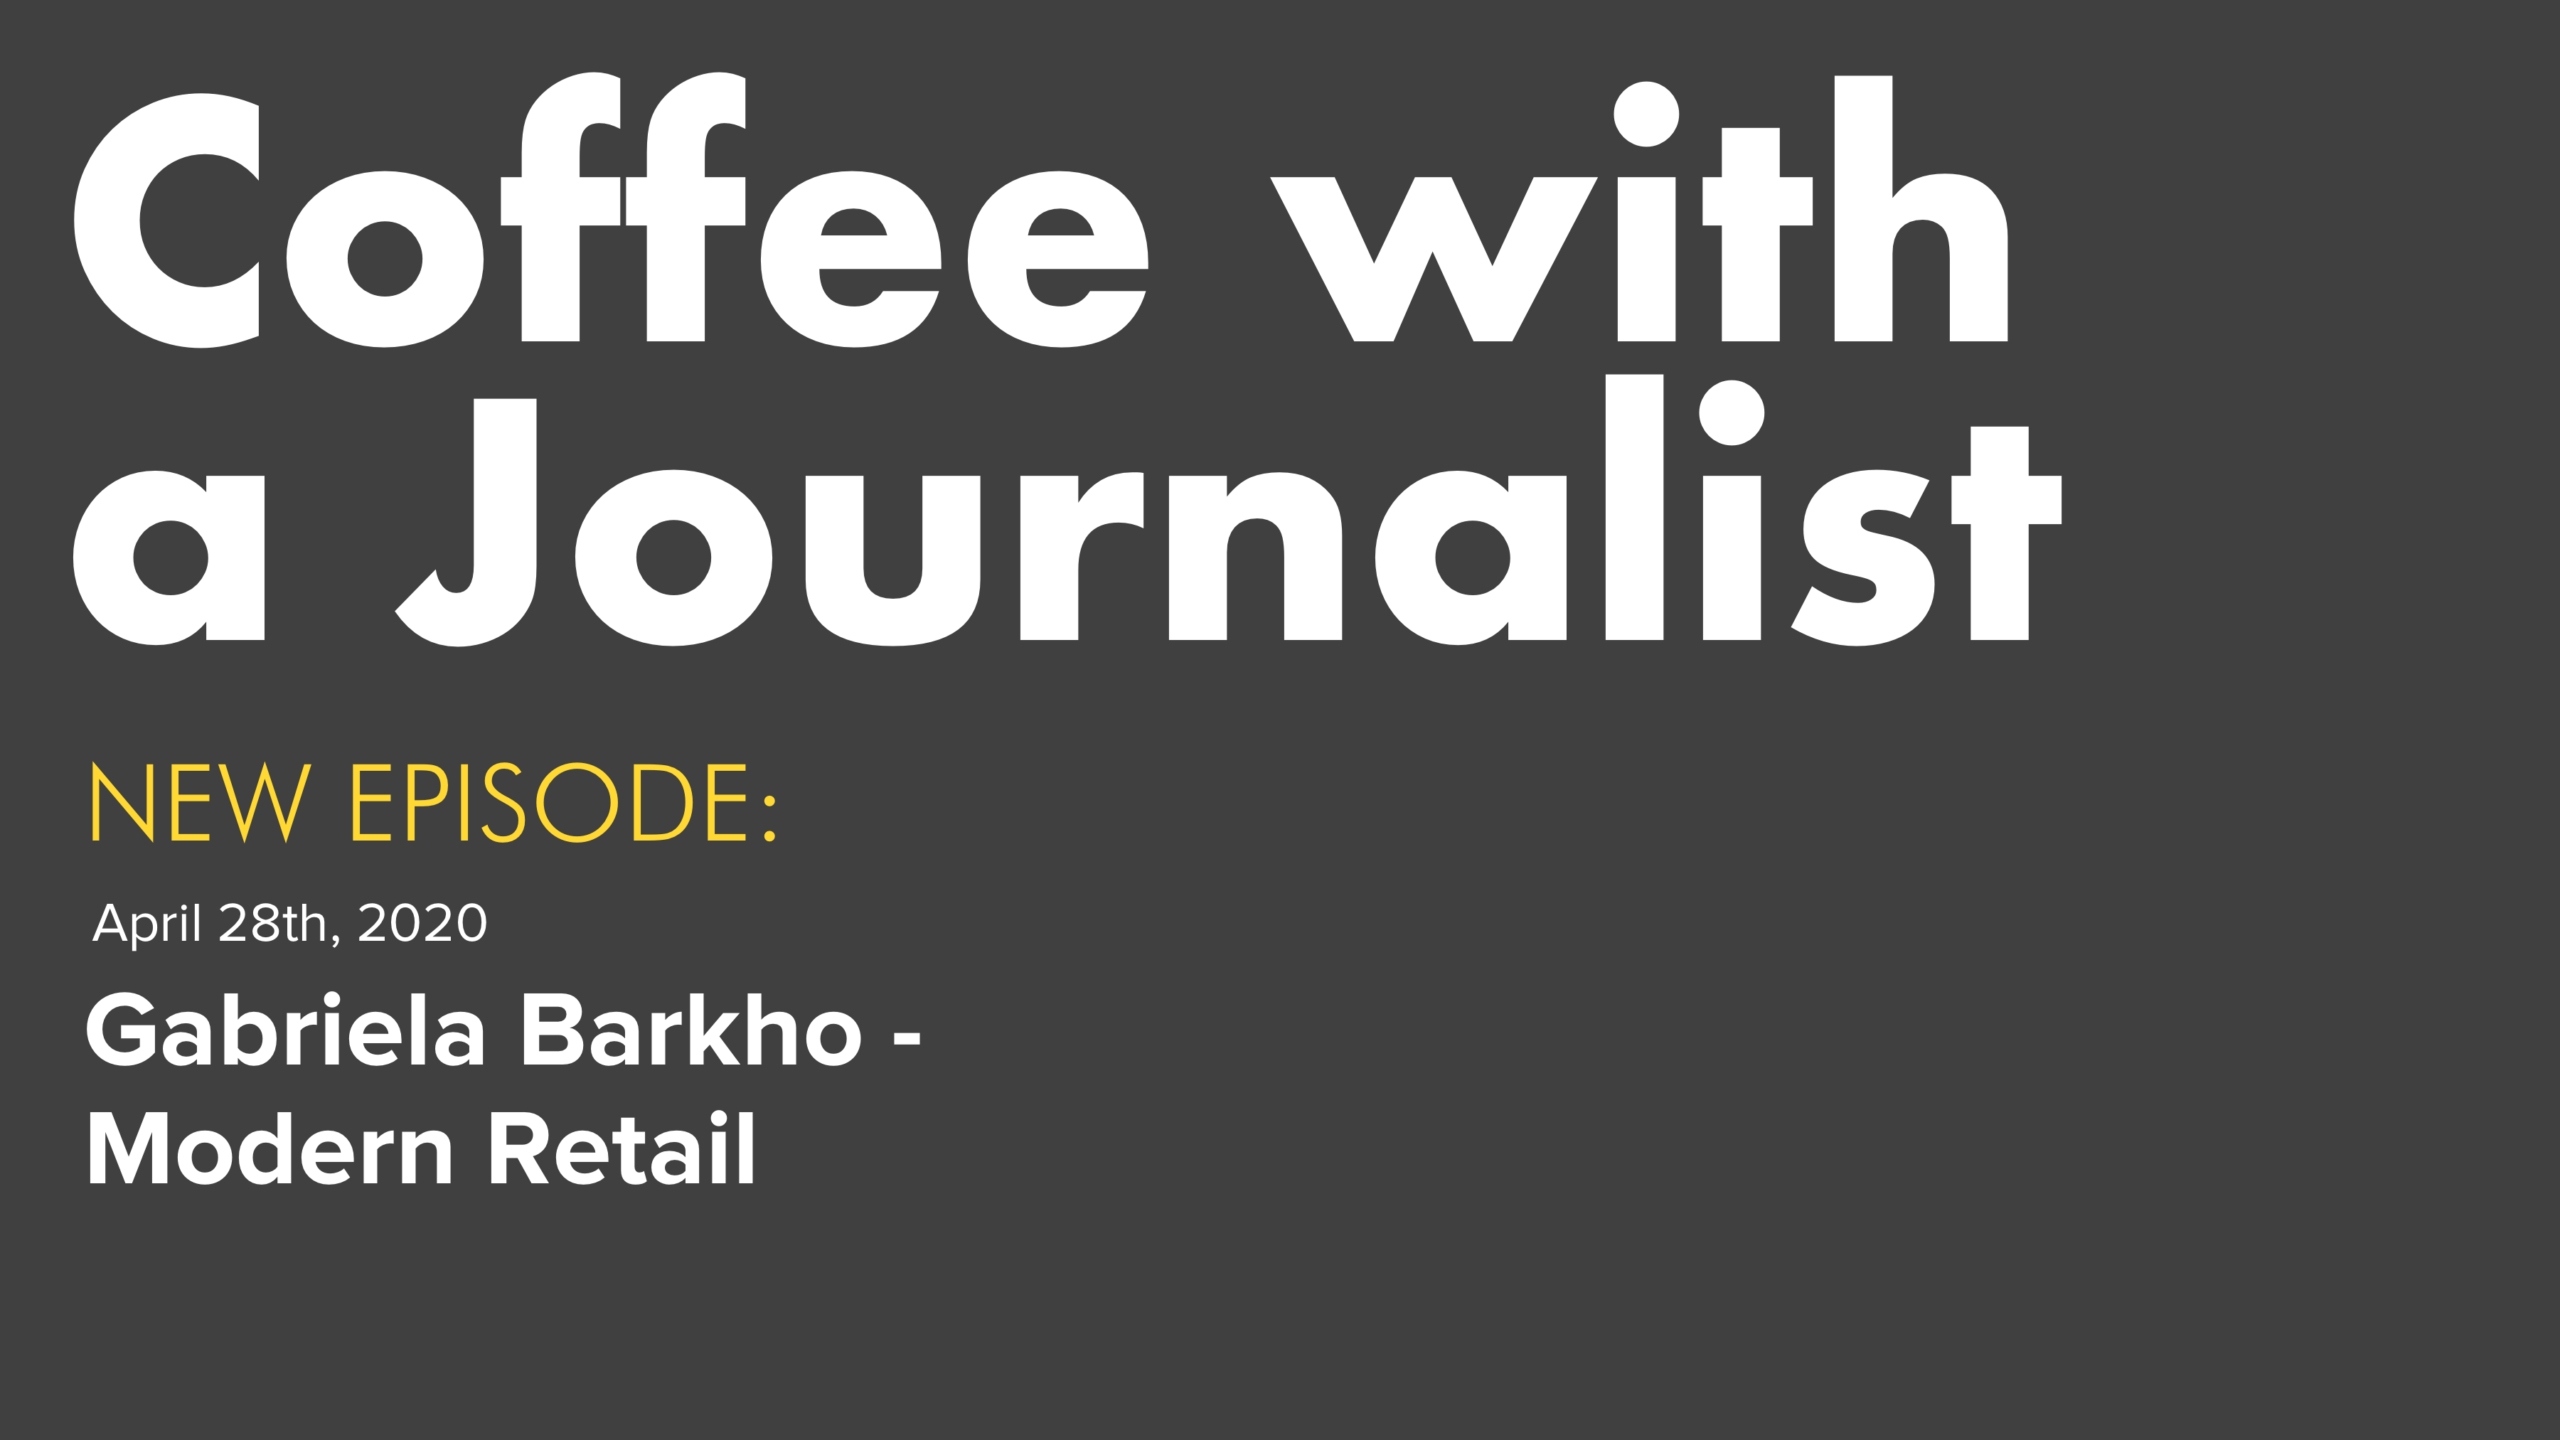 Coffee With A Journalist - Gabriela Barkho, Modern Retail